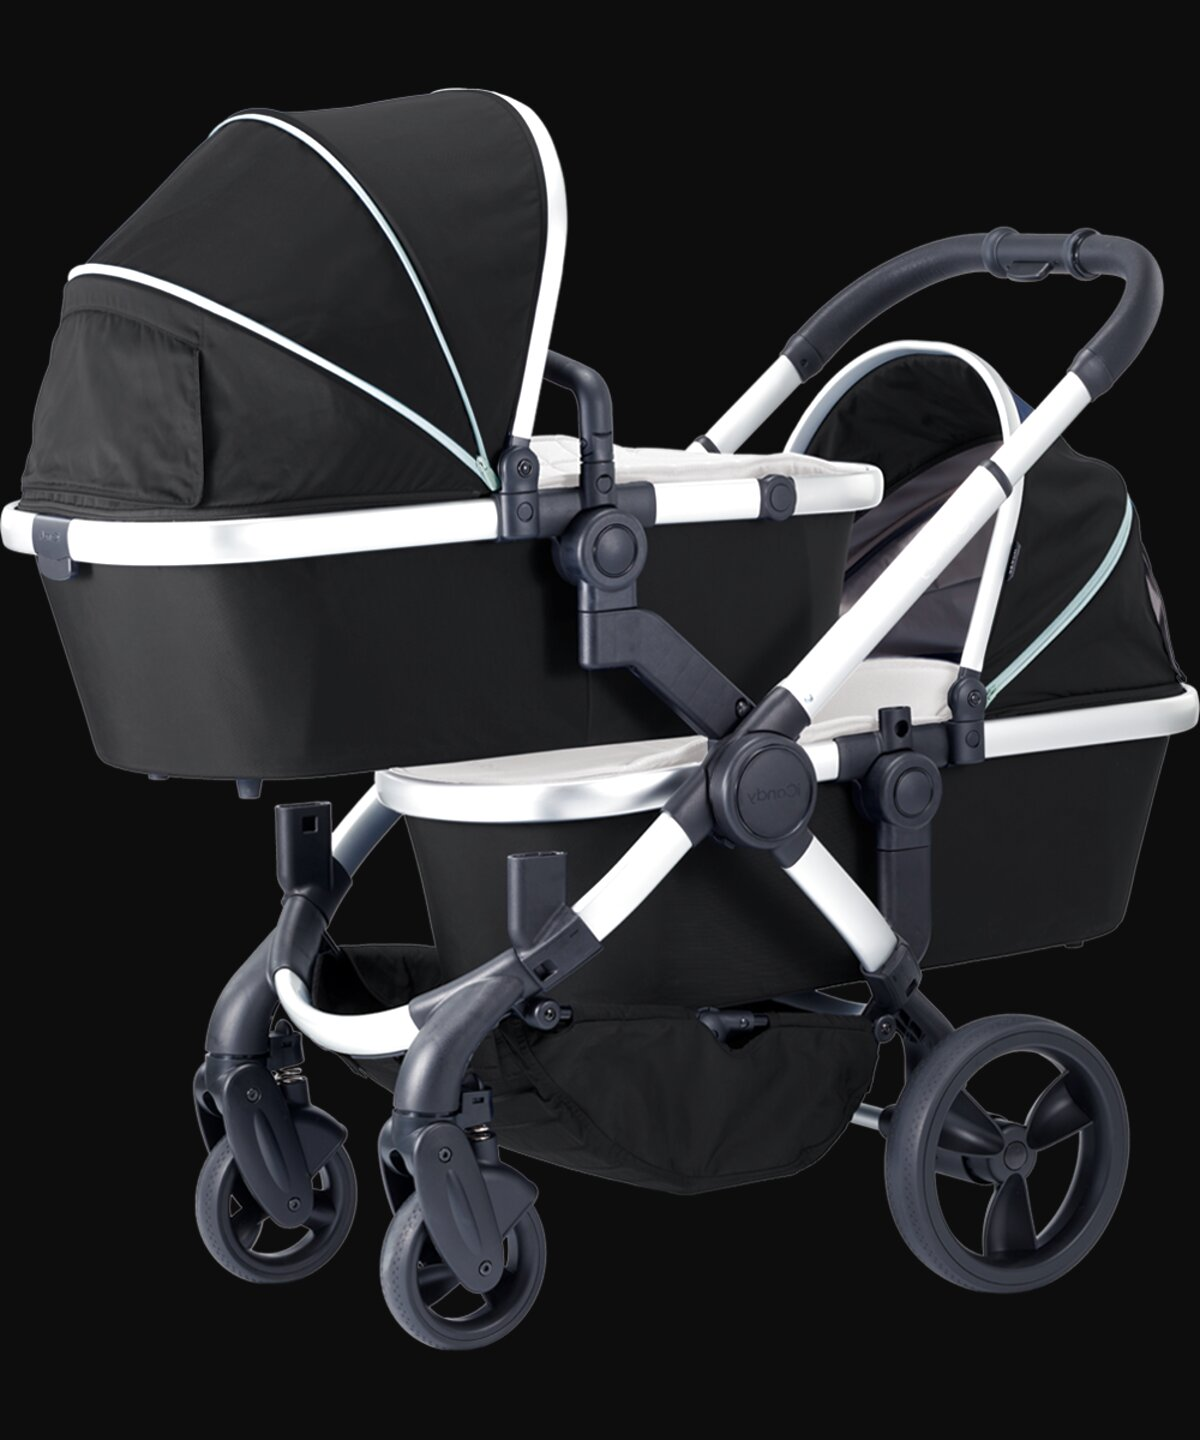 icandy twin pram for sale